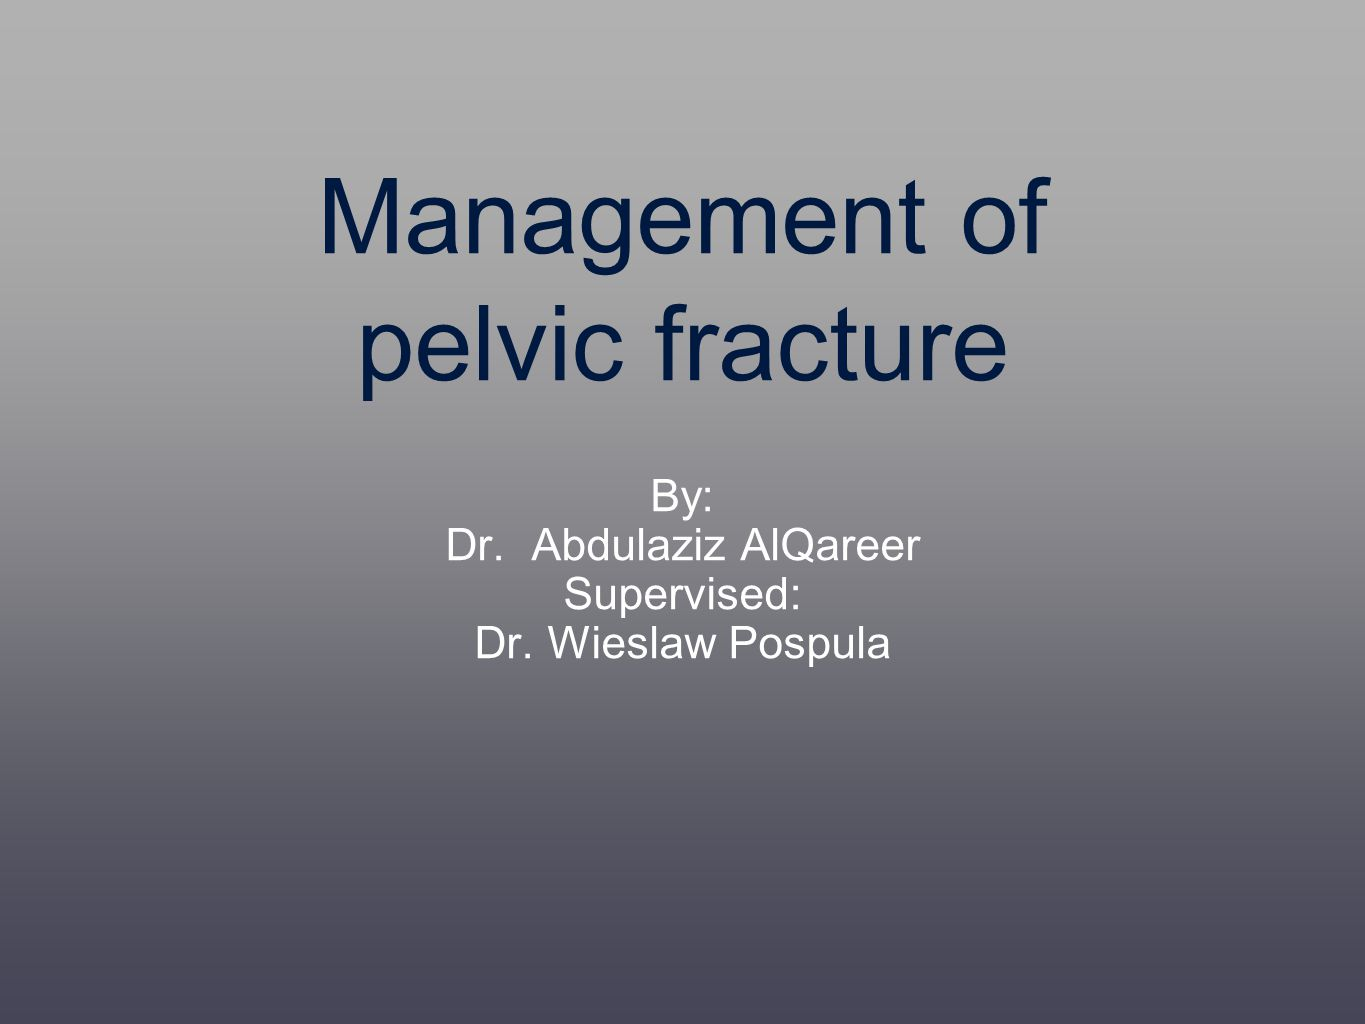 Management of pelvic fracture